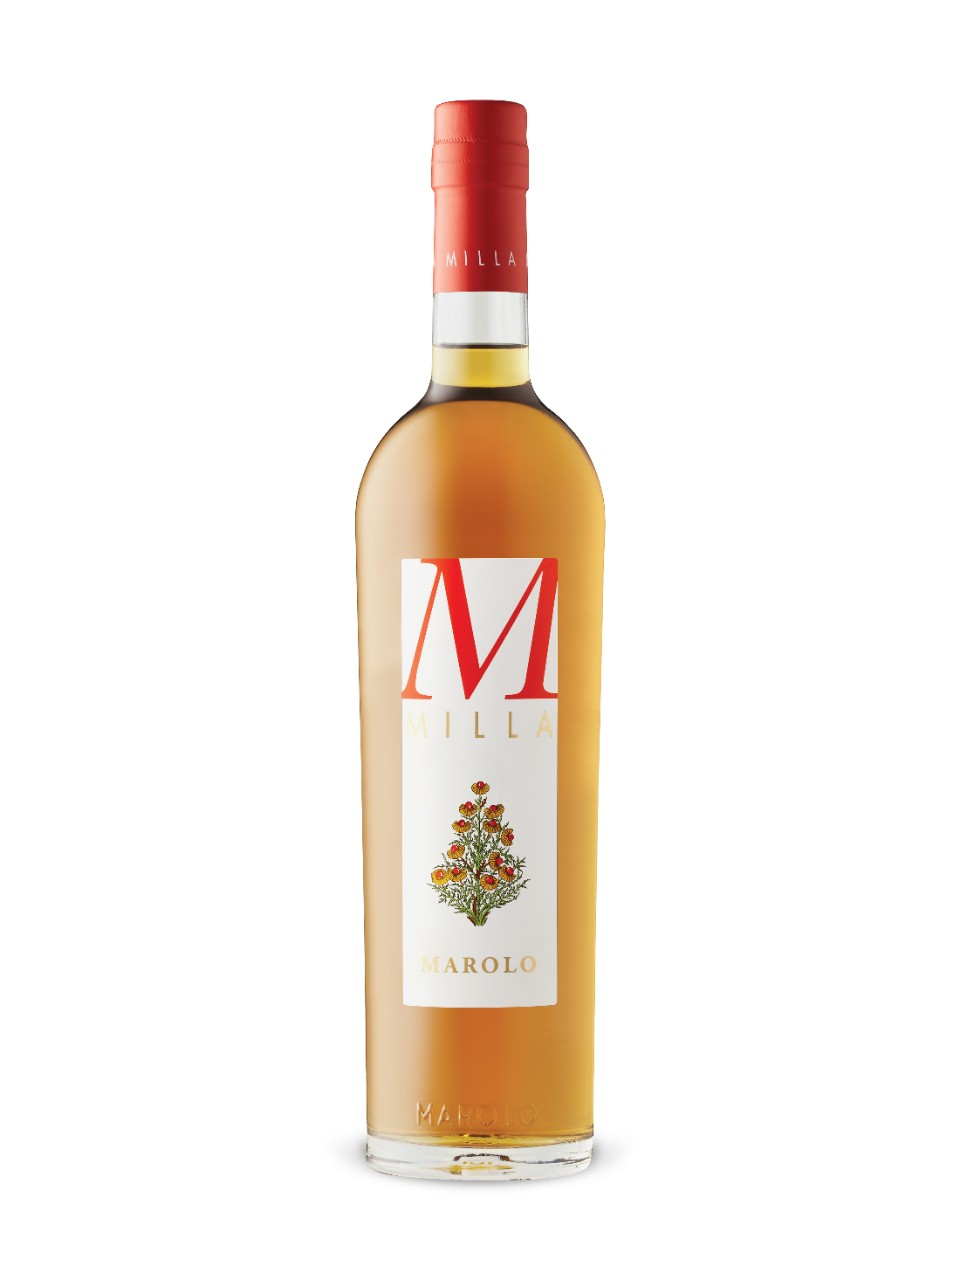 Marolo Milla Liqueur Grappa and Camomile from LCBO